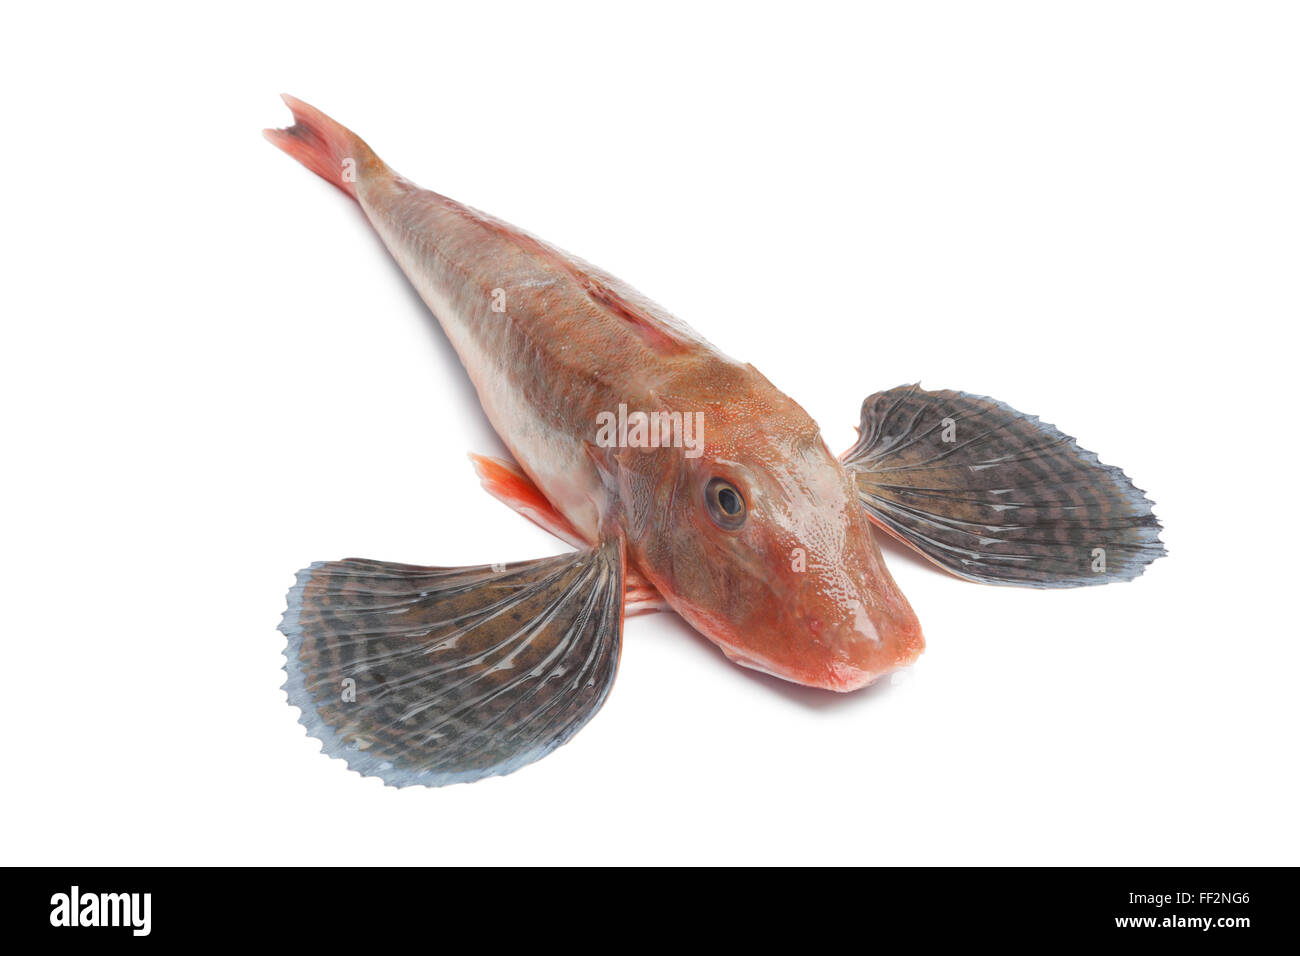 Whole single fresh raw red tub gurnard fish with spread fins on white background - Stock Image